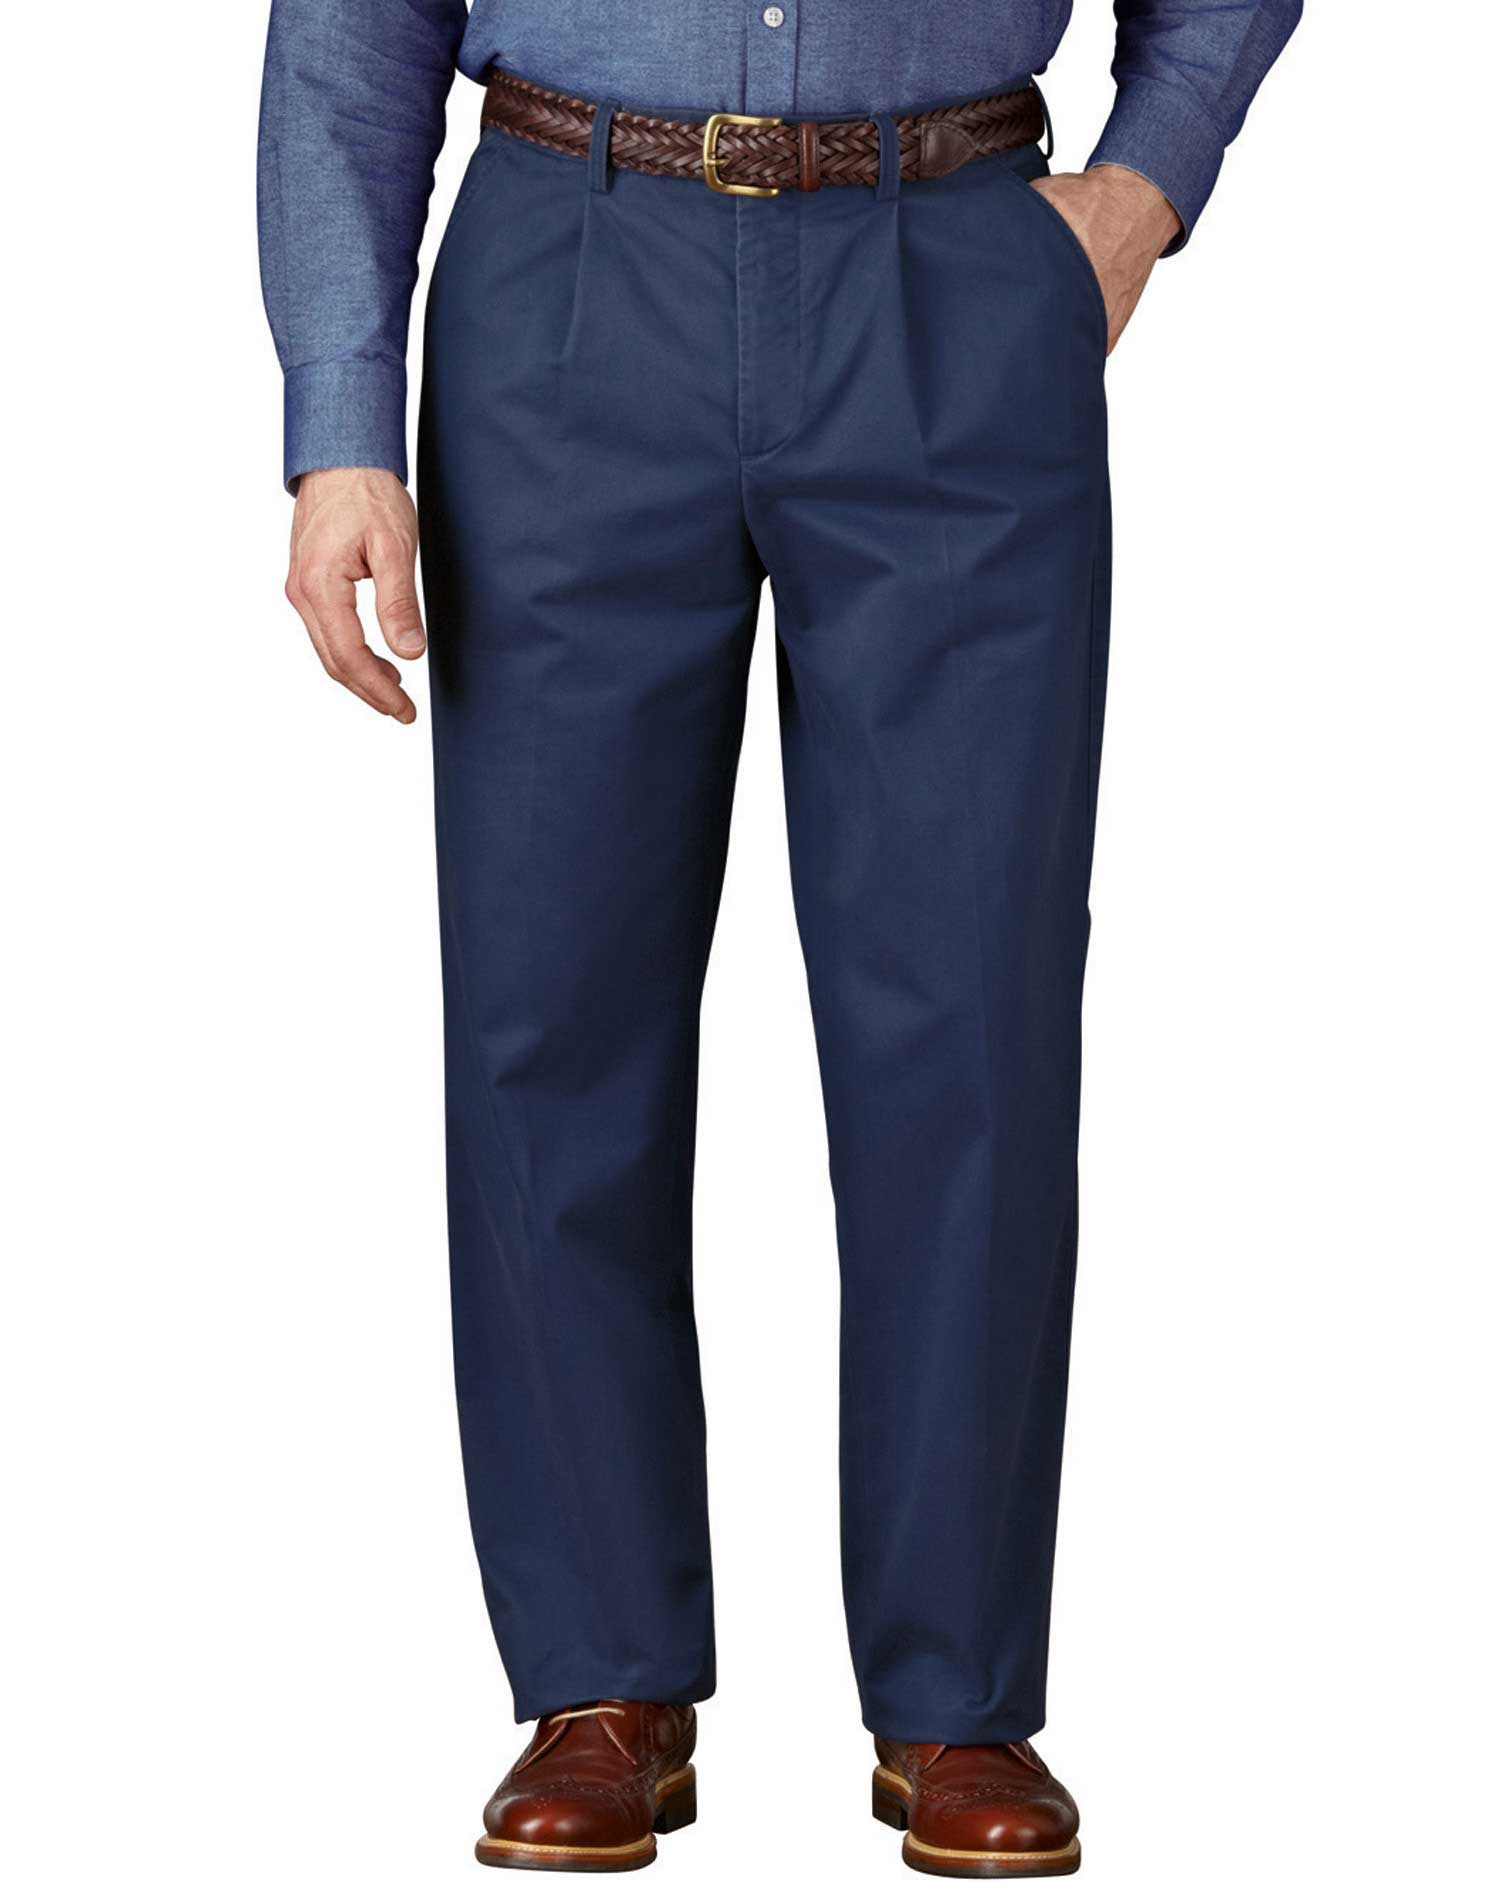 Blue Classic Fit Single Pleat Weekend Cotton Chino Trousers Size W34 L29 by Charles Tyrwhitt